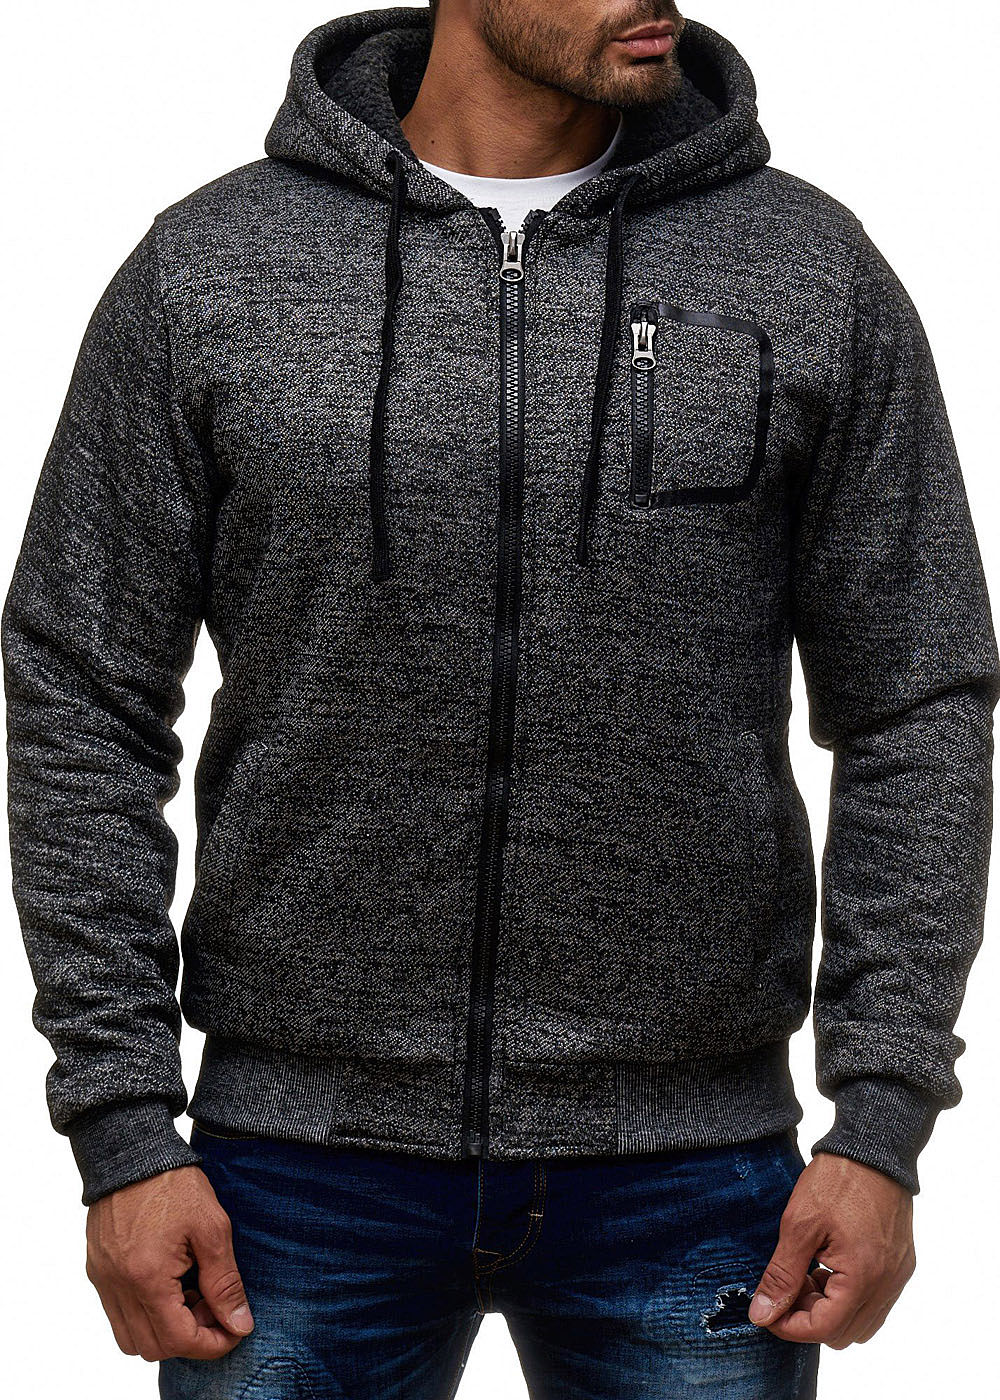 seventyseven lifestyle herren zip hoodie kapuze 1zip tasche teddyfutter charcoal grau 77onlineshop. Black Bedroom Furniture Sets. Home Design Ideas